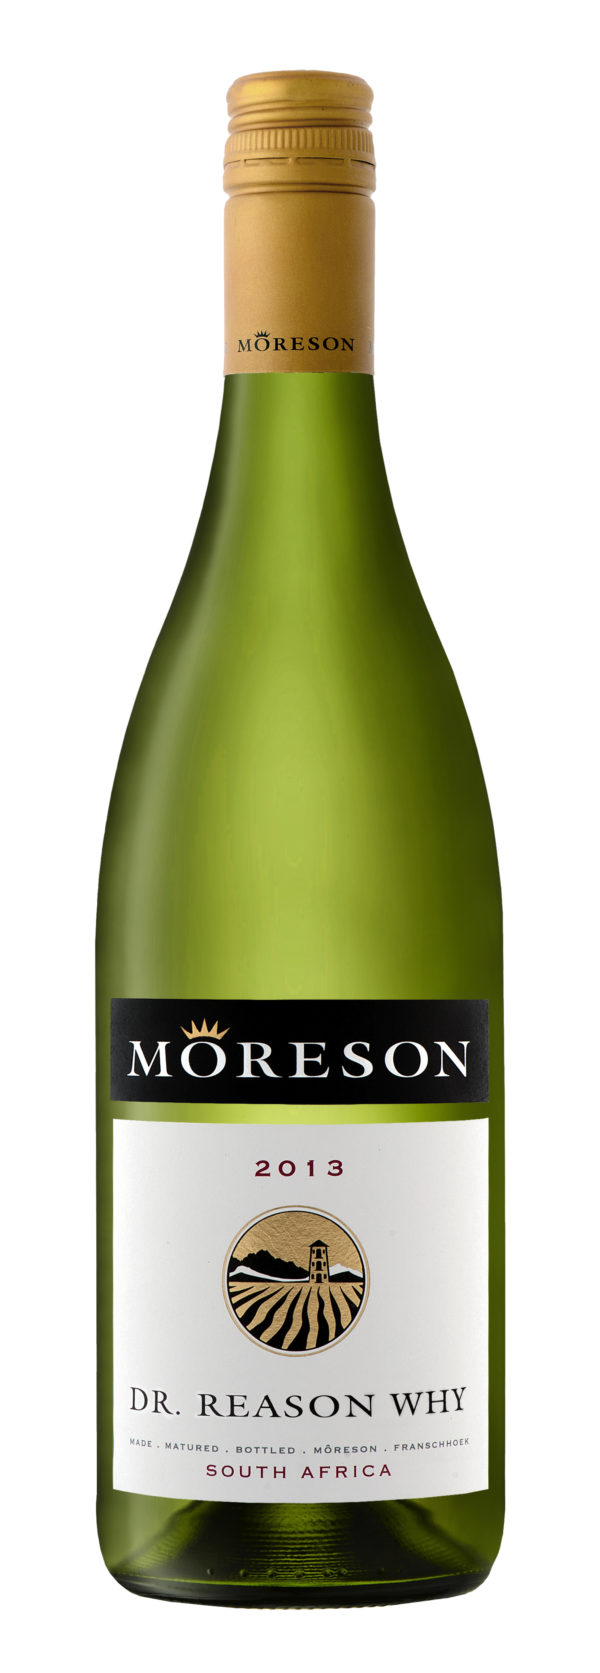 Moreson, Dr Reason Why, Unwooded Chardonnay, Franschhoek, South Africa, 2018 1